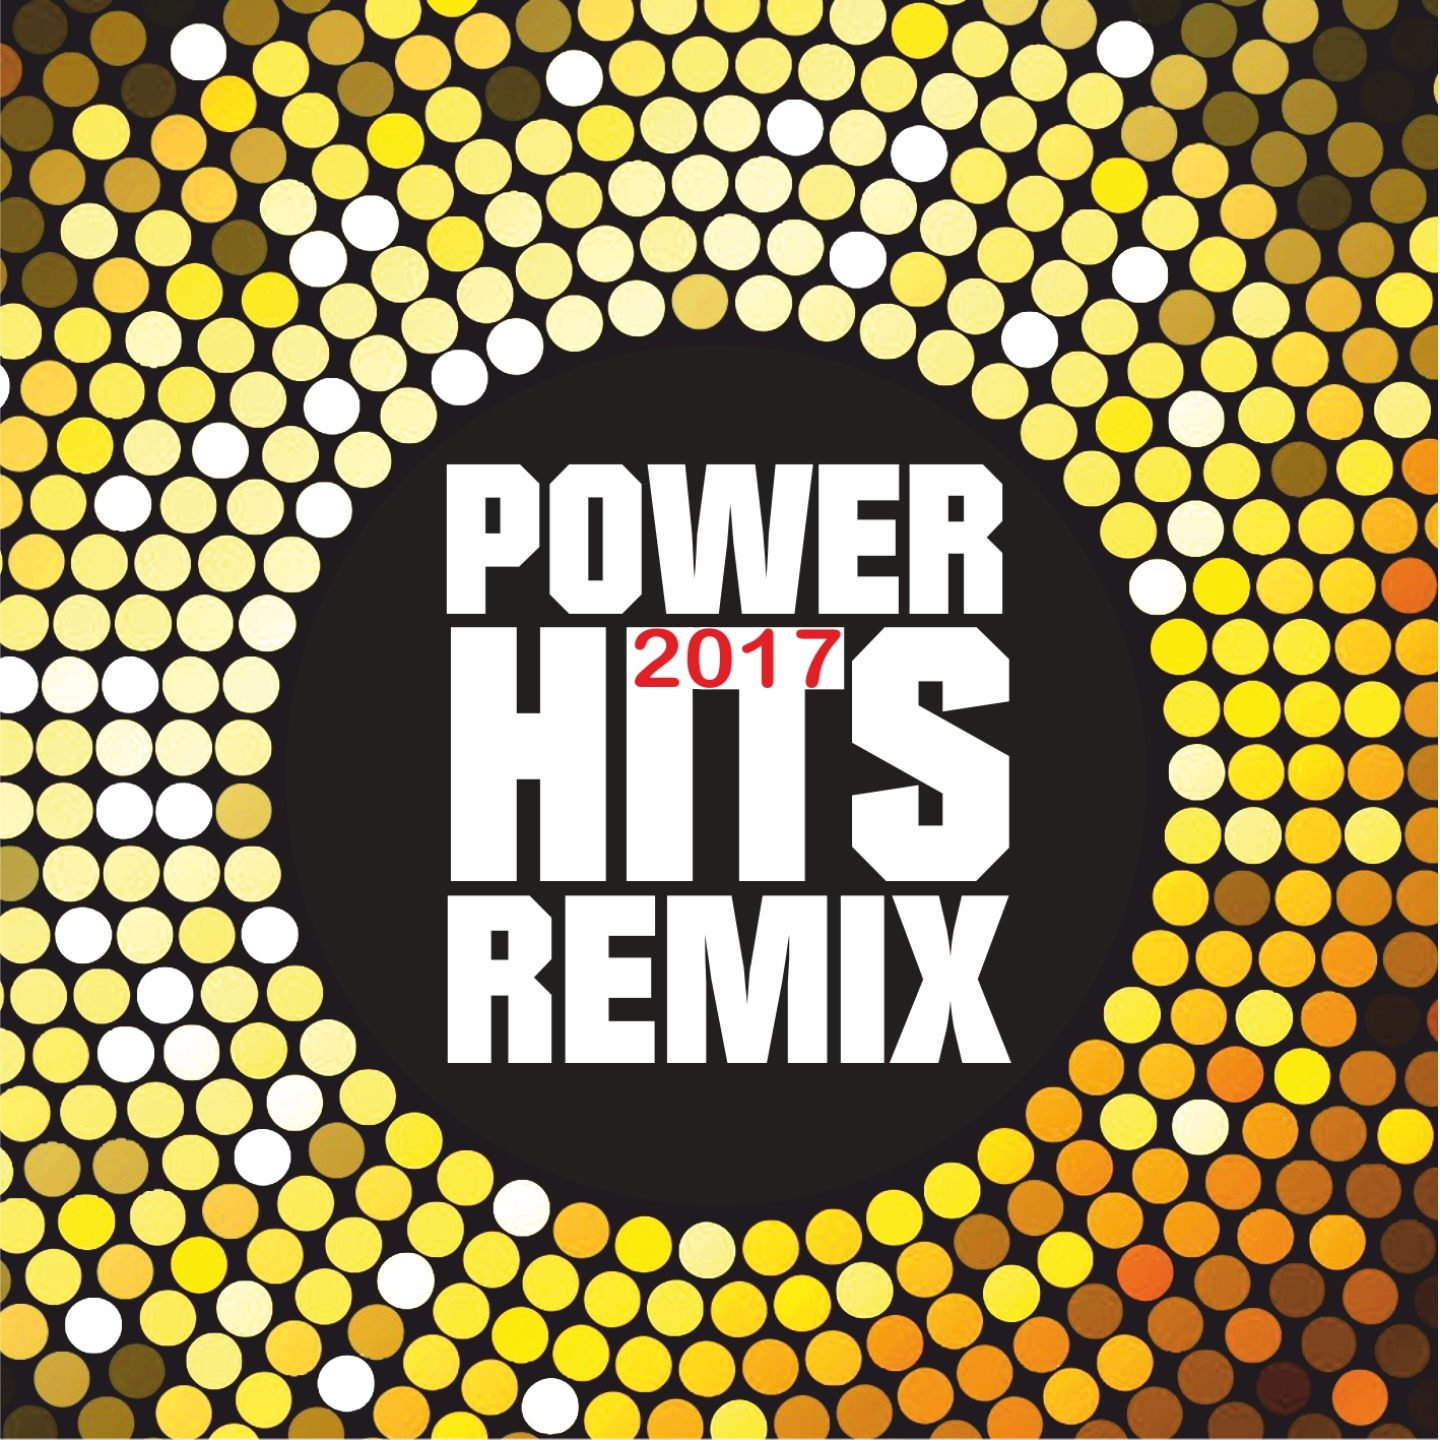 Power remix download free